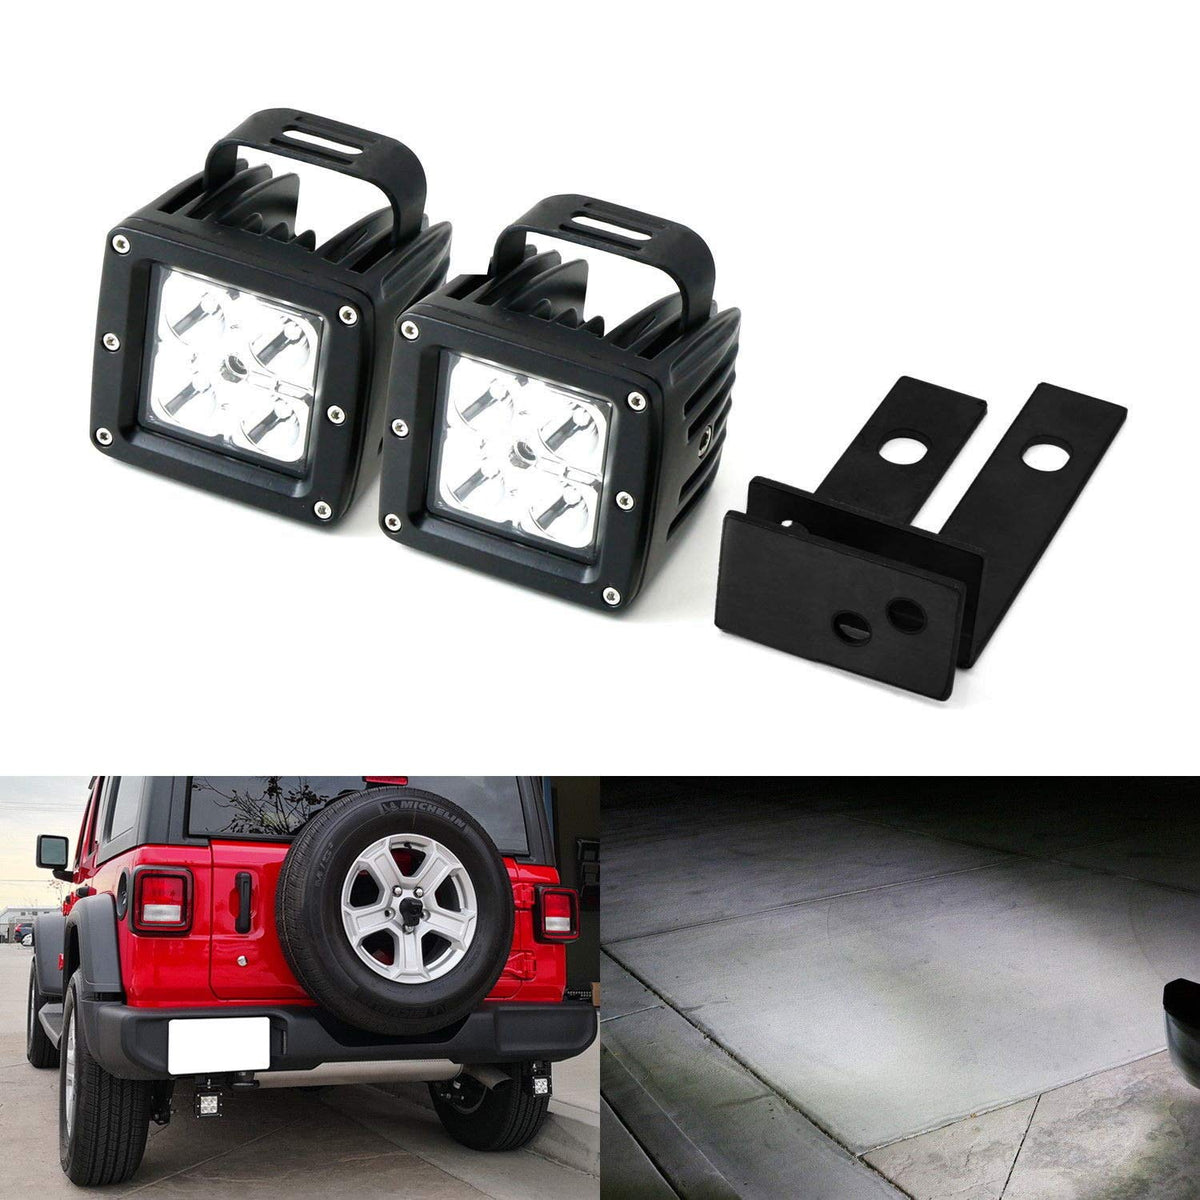 Jeep Wrangler Reverse Light Wiring from cdn.shopify.com